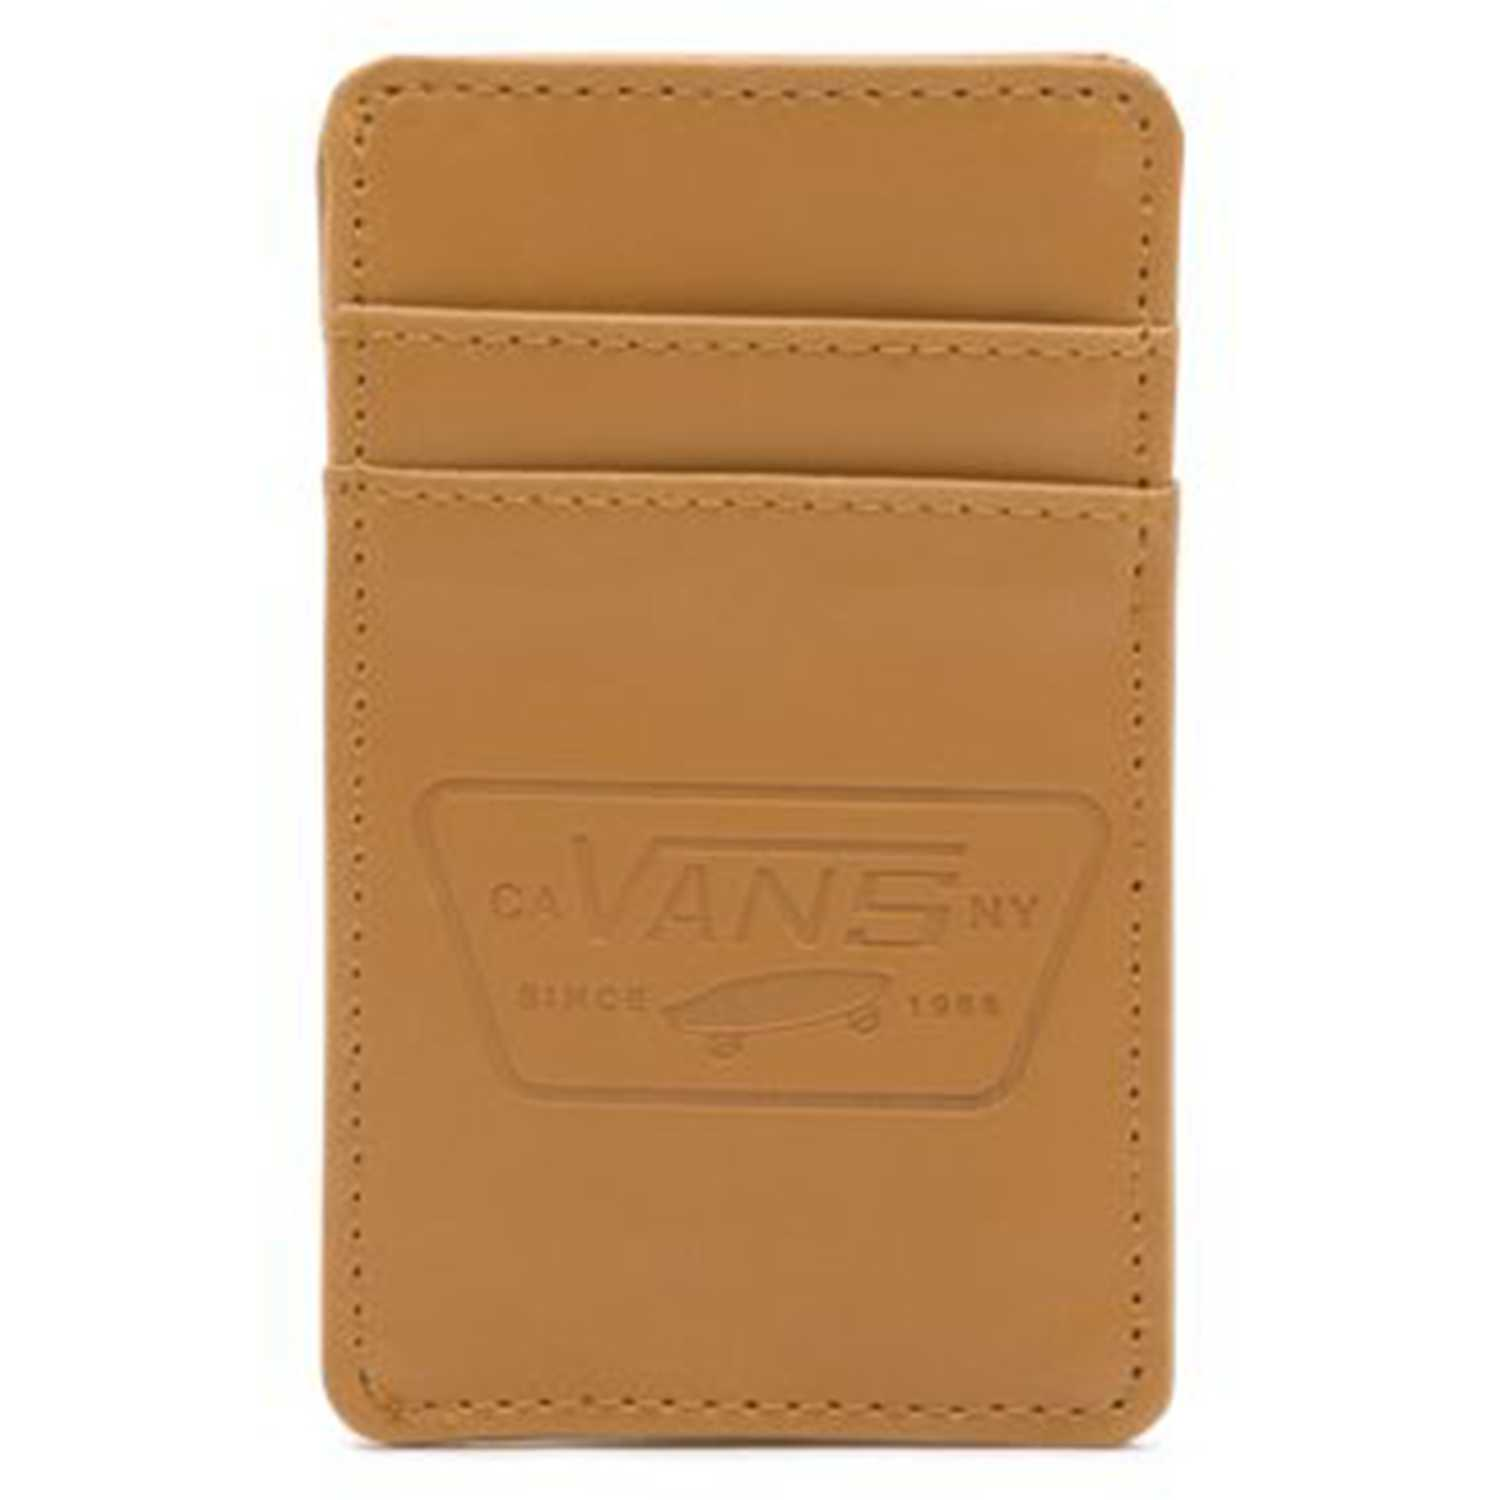 Billetera de Hombre Vans Natural full patch card holder